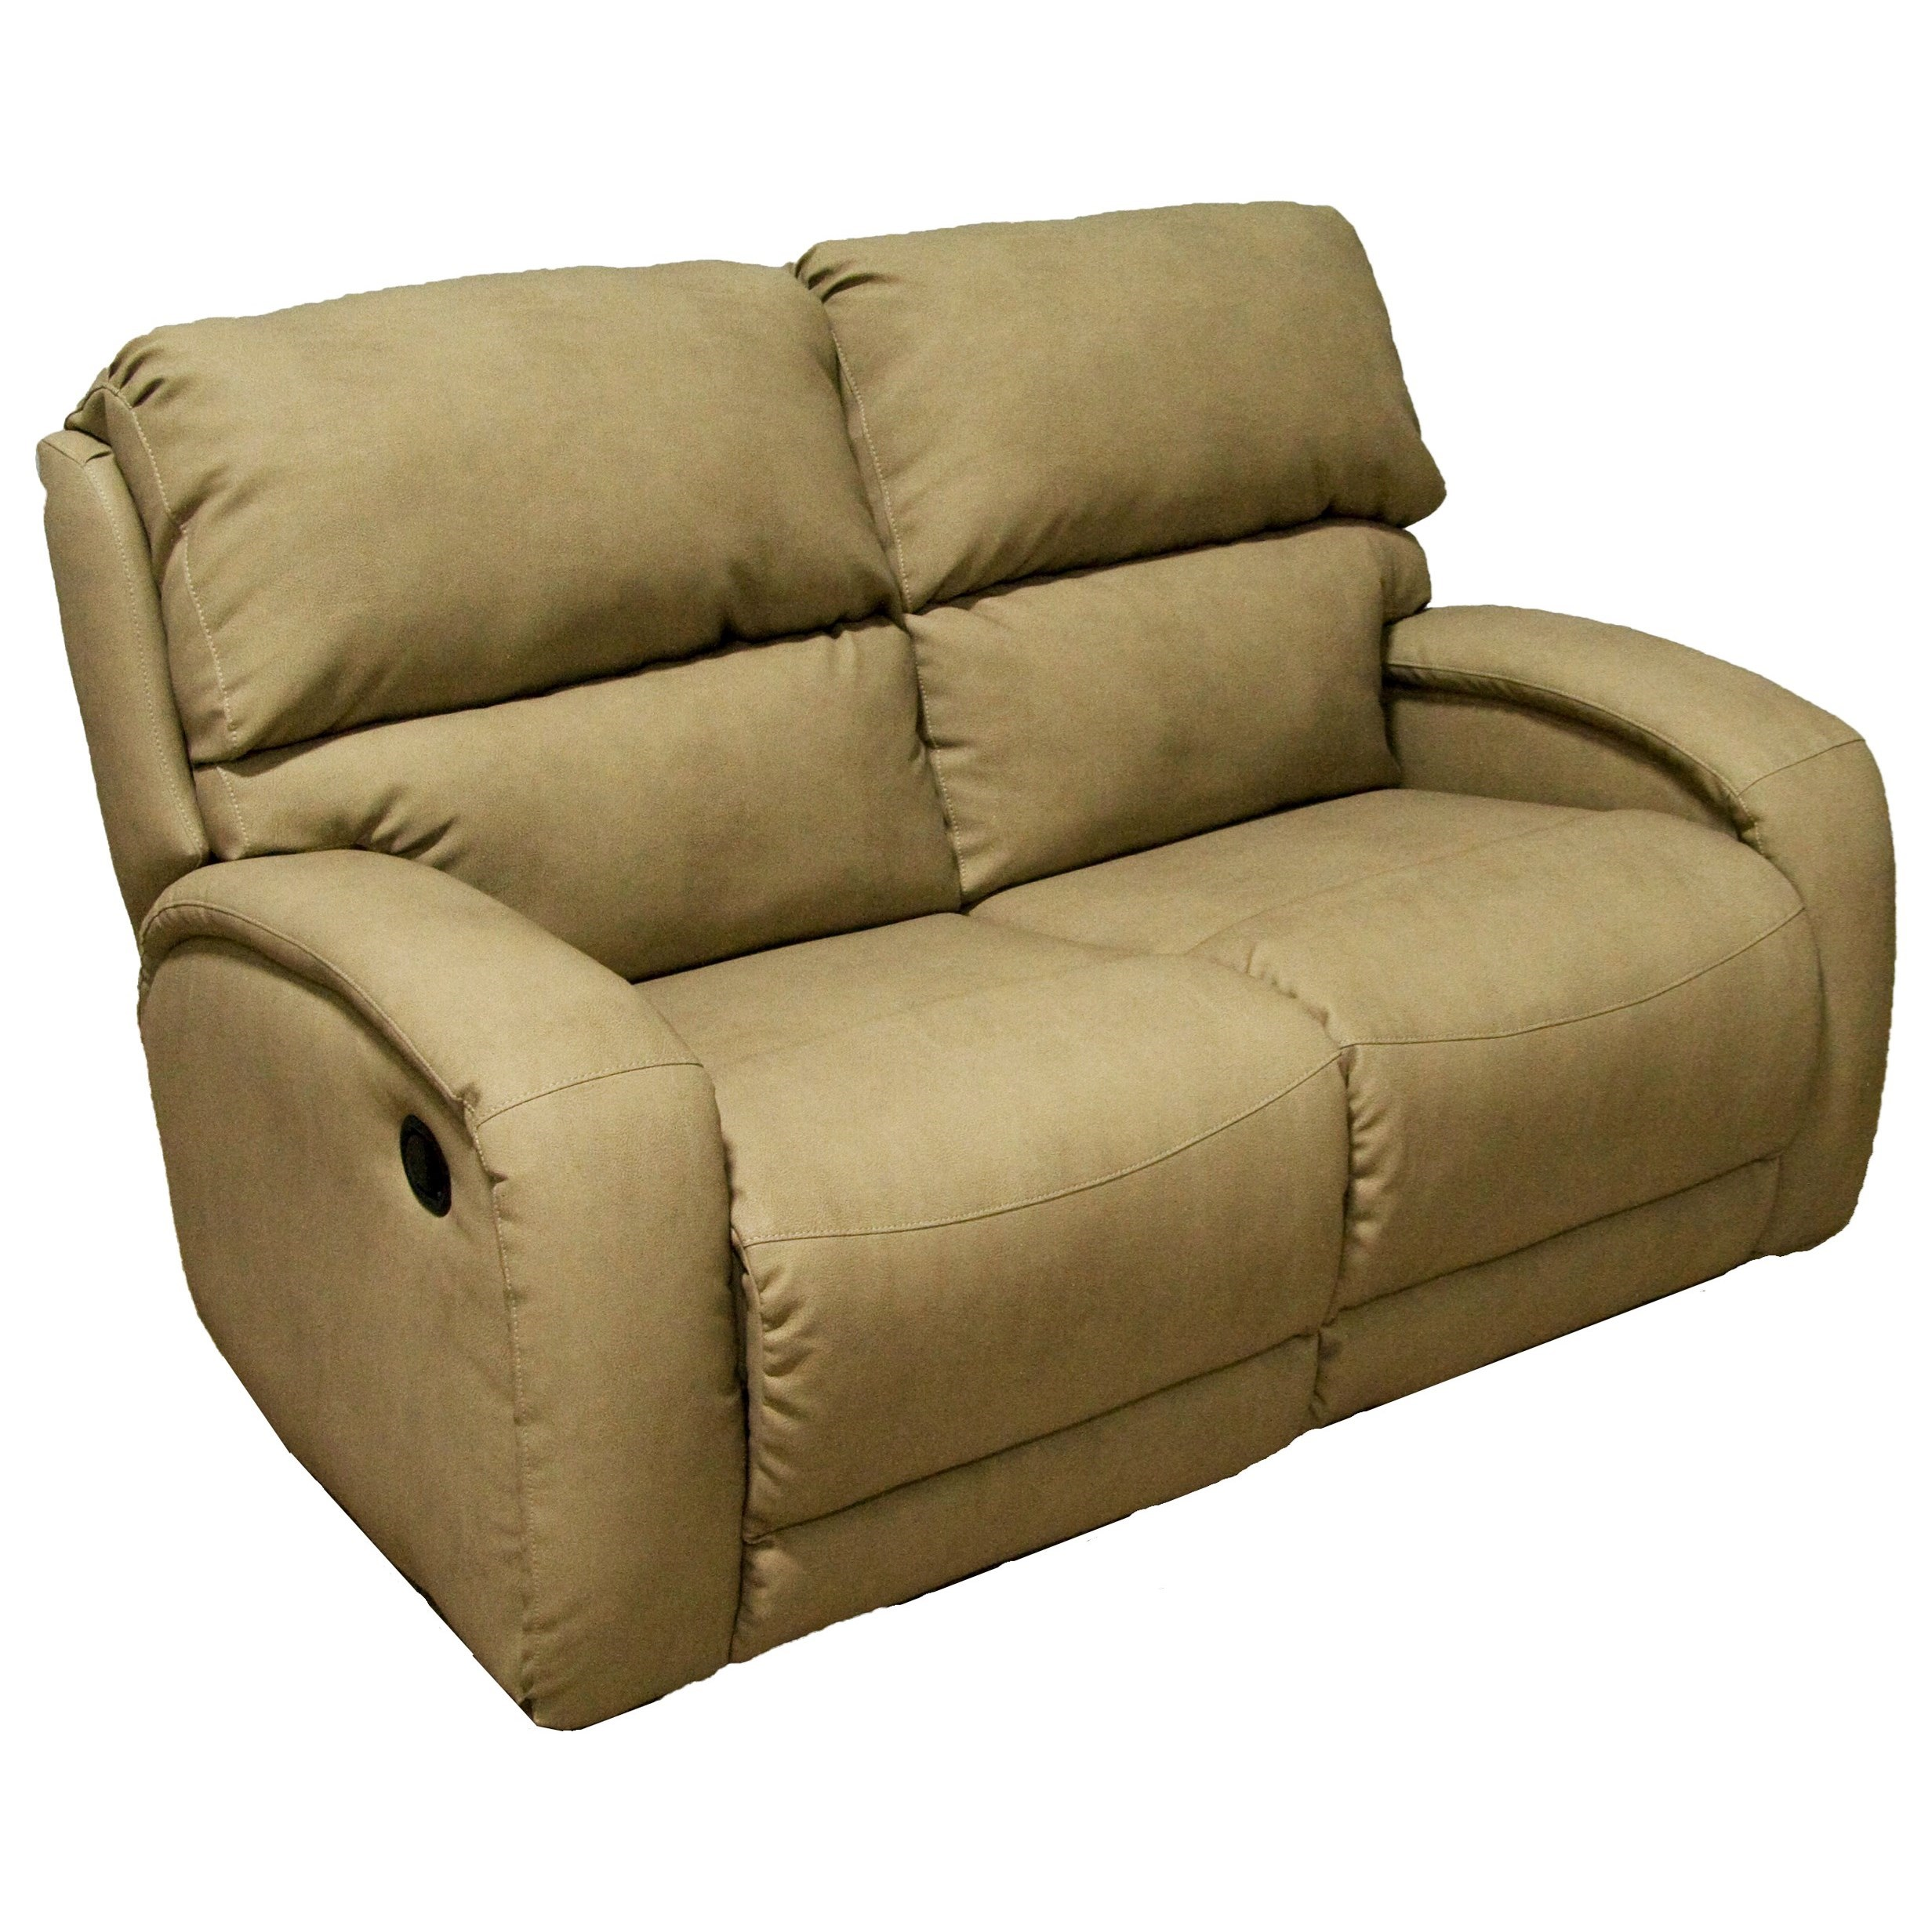 Fandango Double Reclining Loveseat by Southern Motion at H.L. Stephens